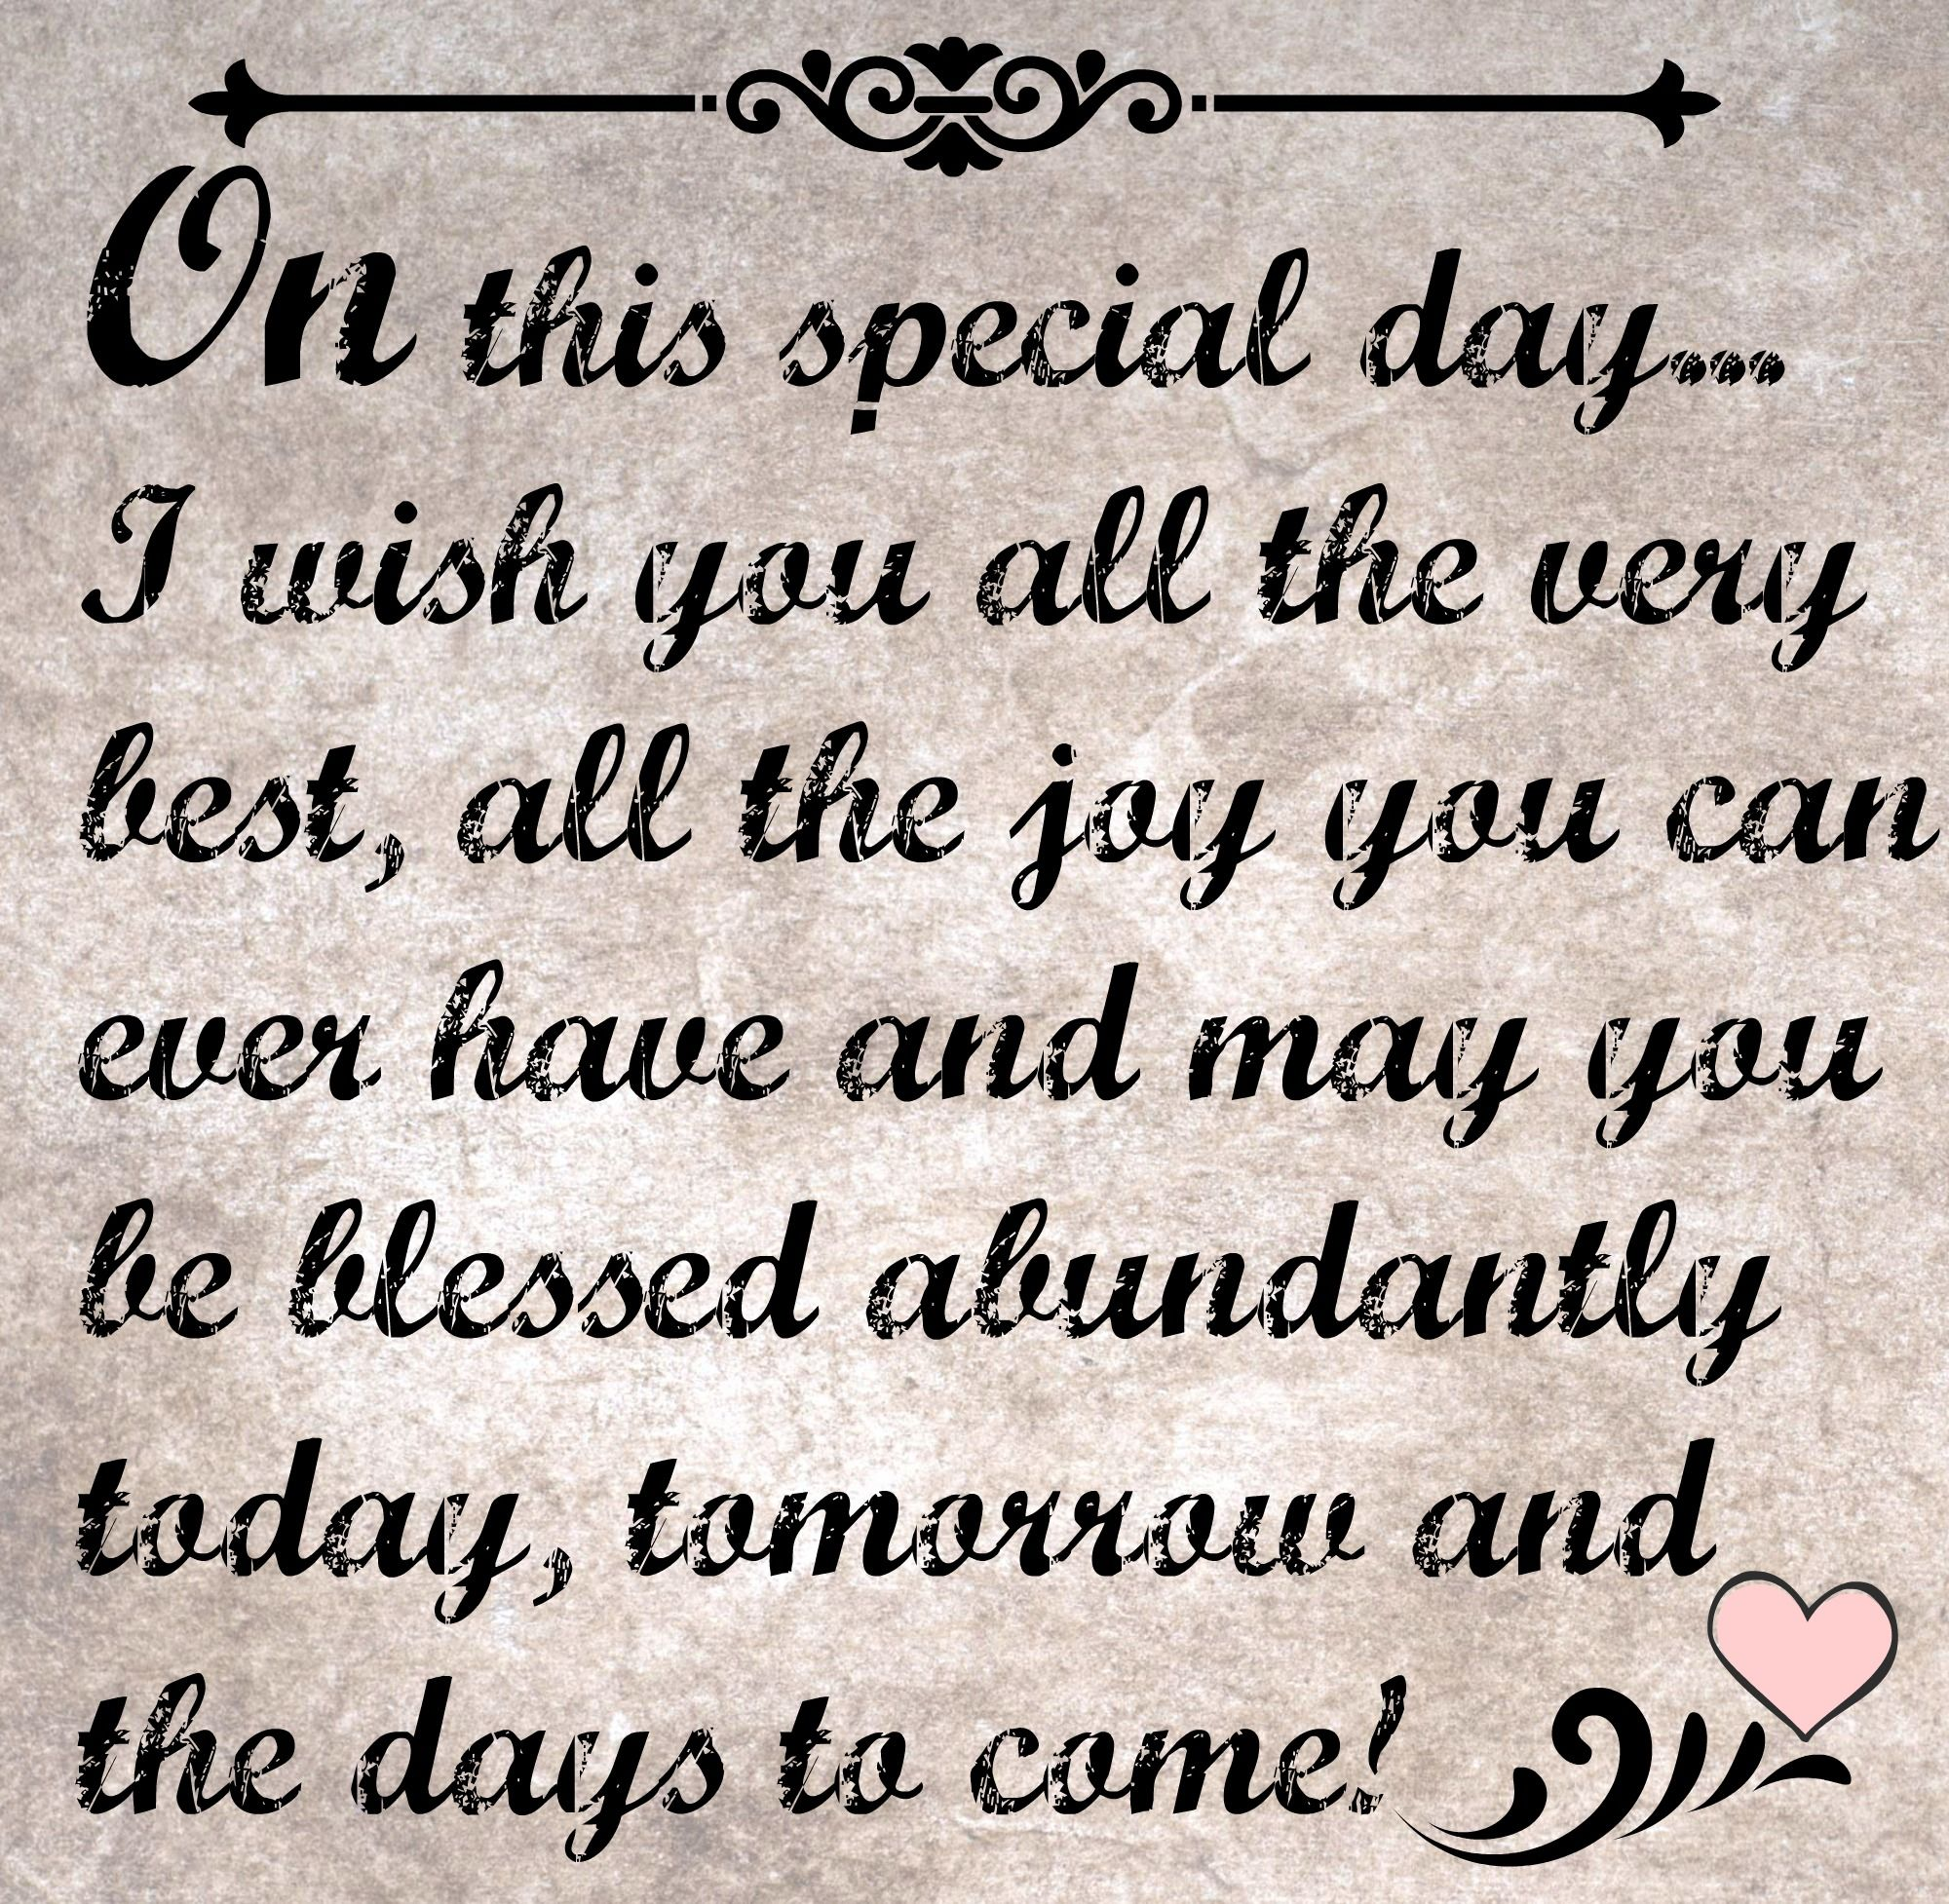 Today I count the many blessings Birthday wishes quotes